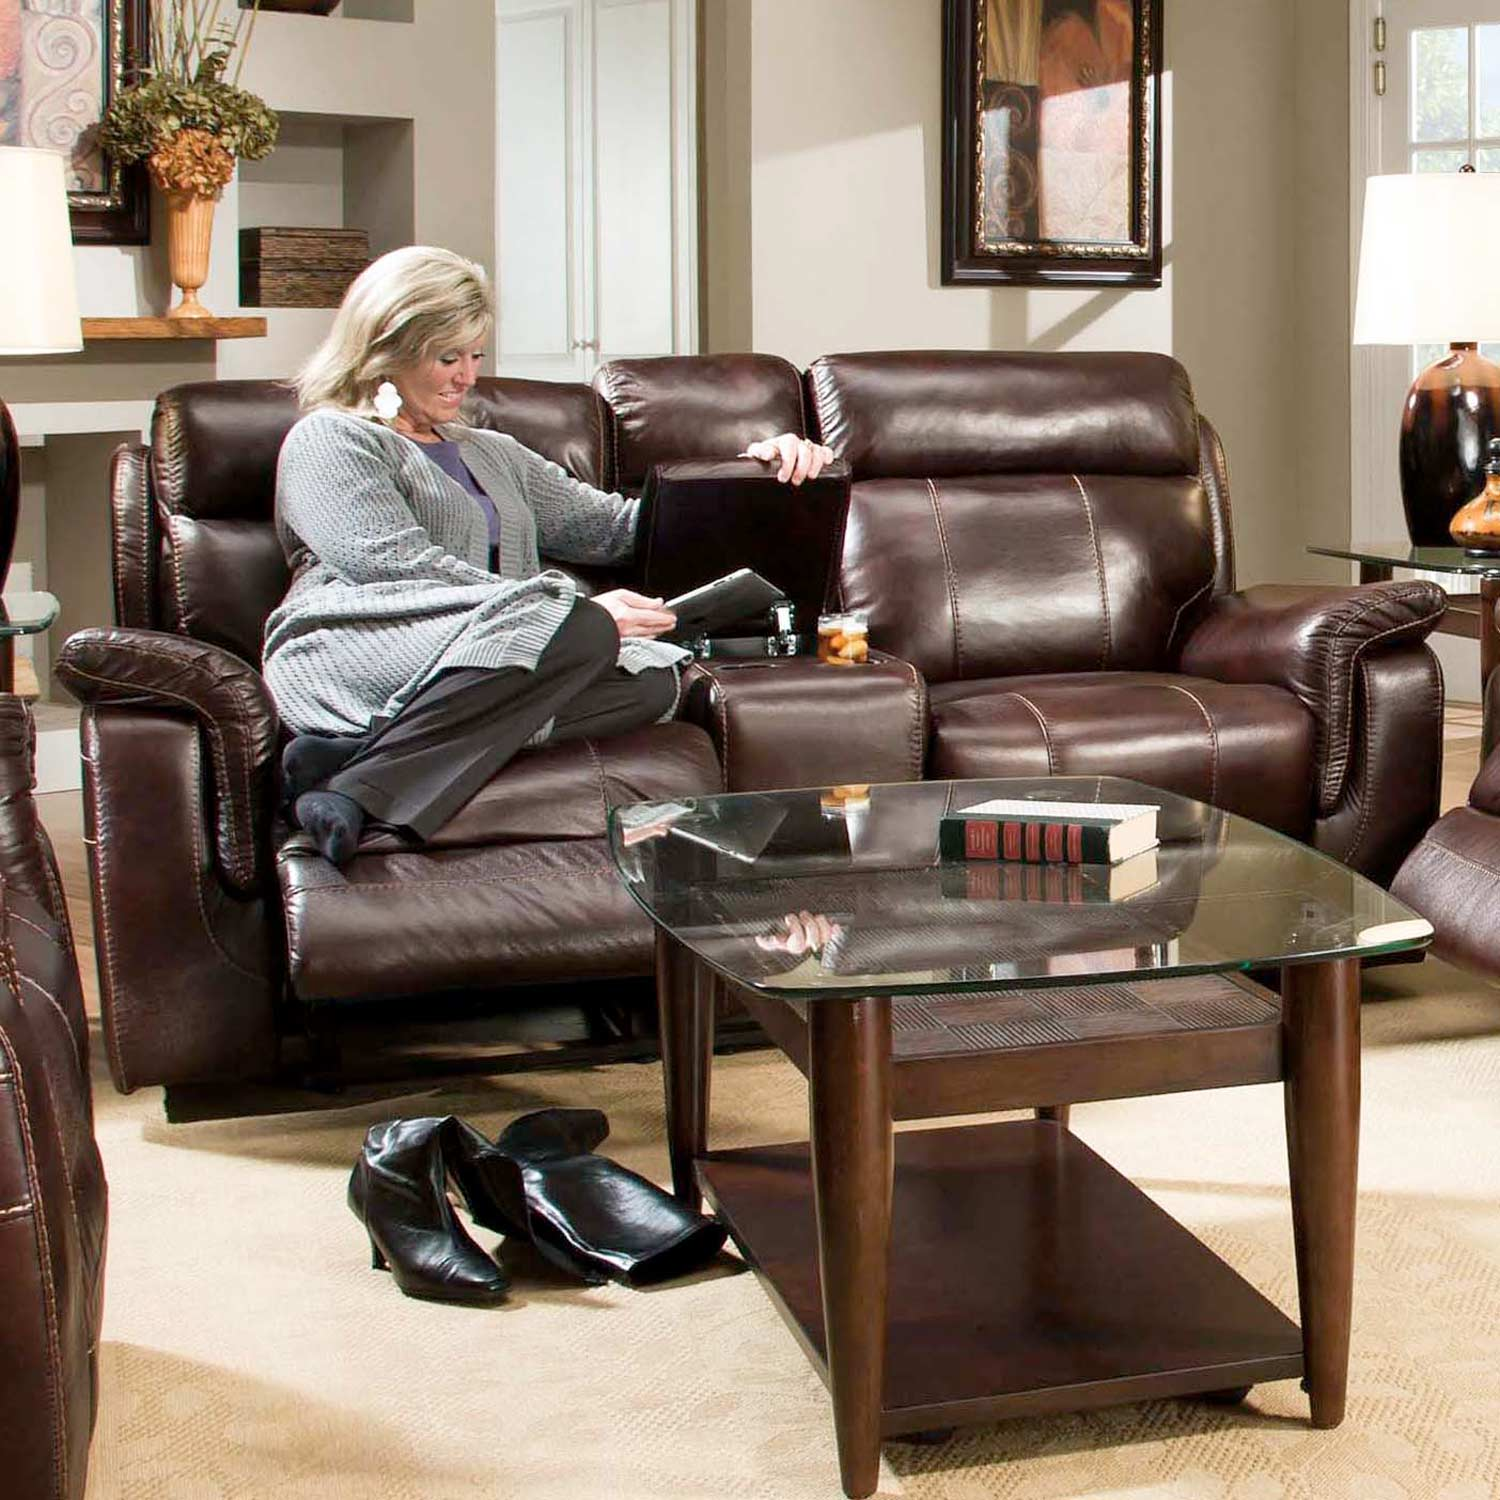 Sequoia Recliner Loveseat - Contrast Stitching, Lowey Tobacco - CHF-52862-40